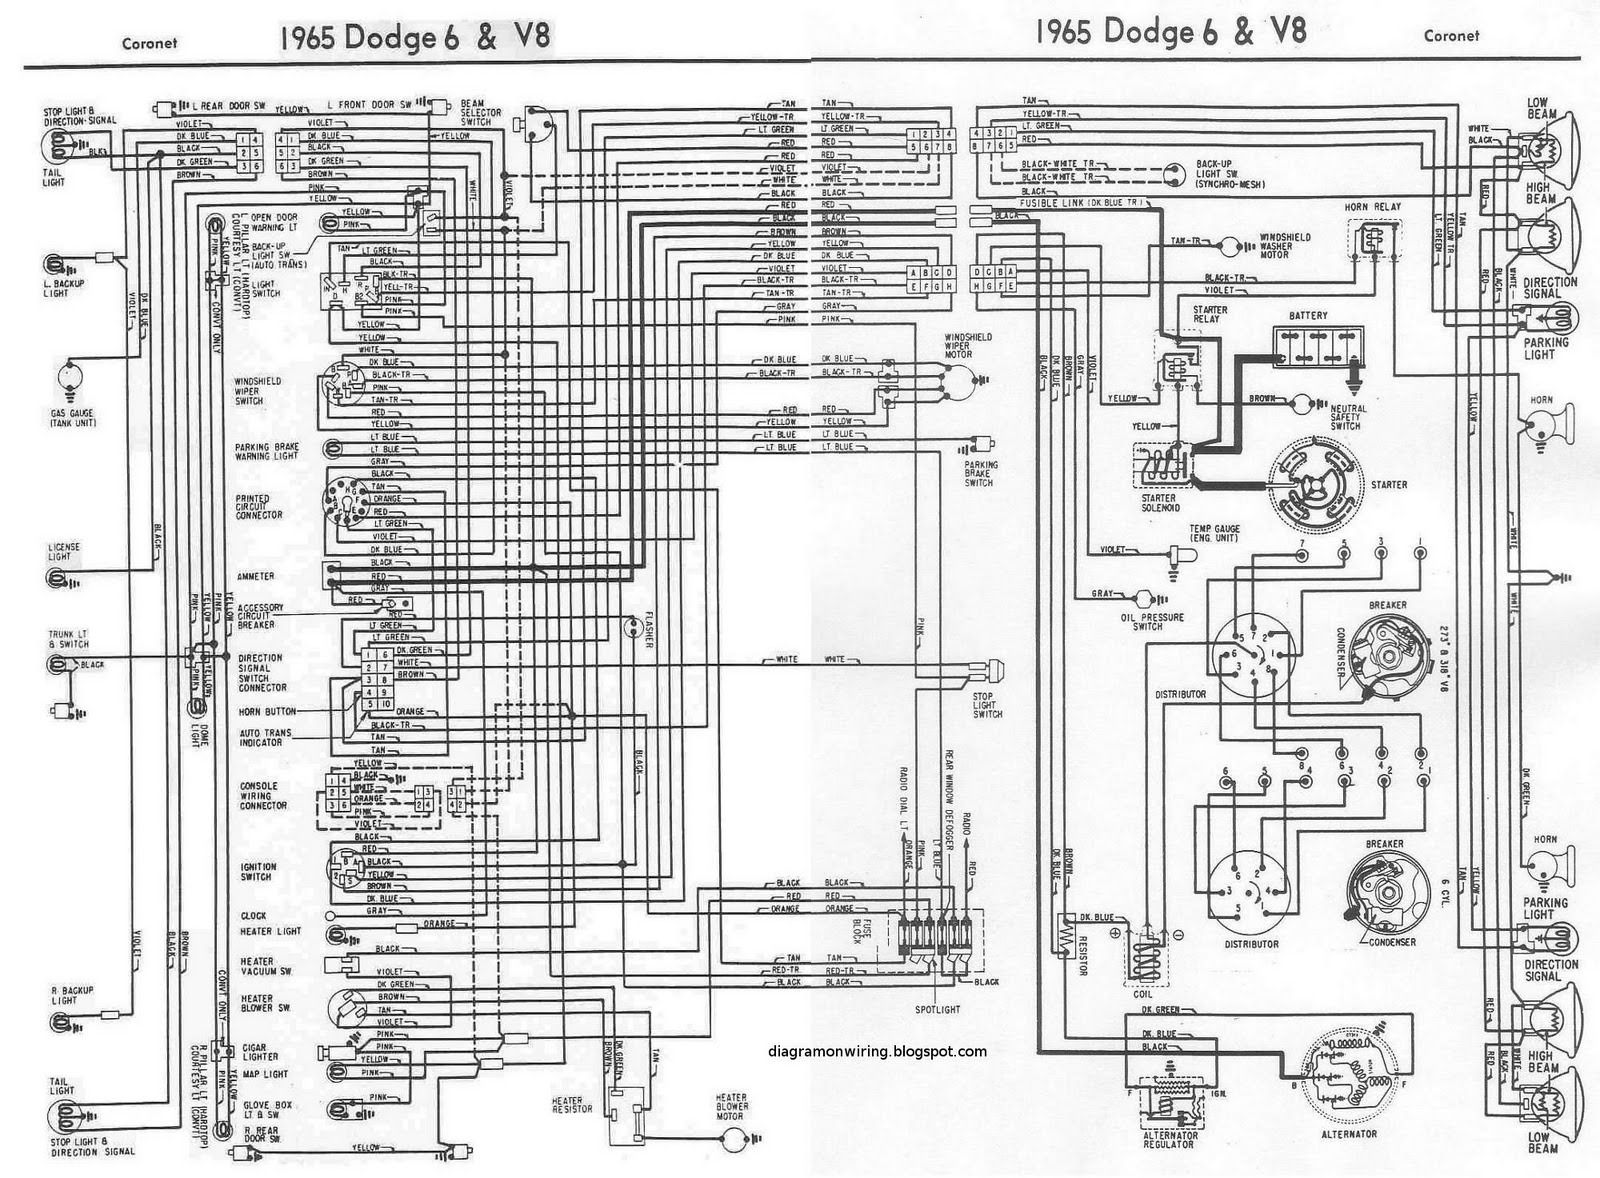 Dodge 6 And V8 Coronet 1965 Complete Wiring Diagram